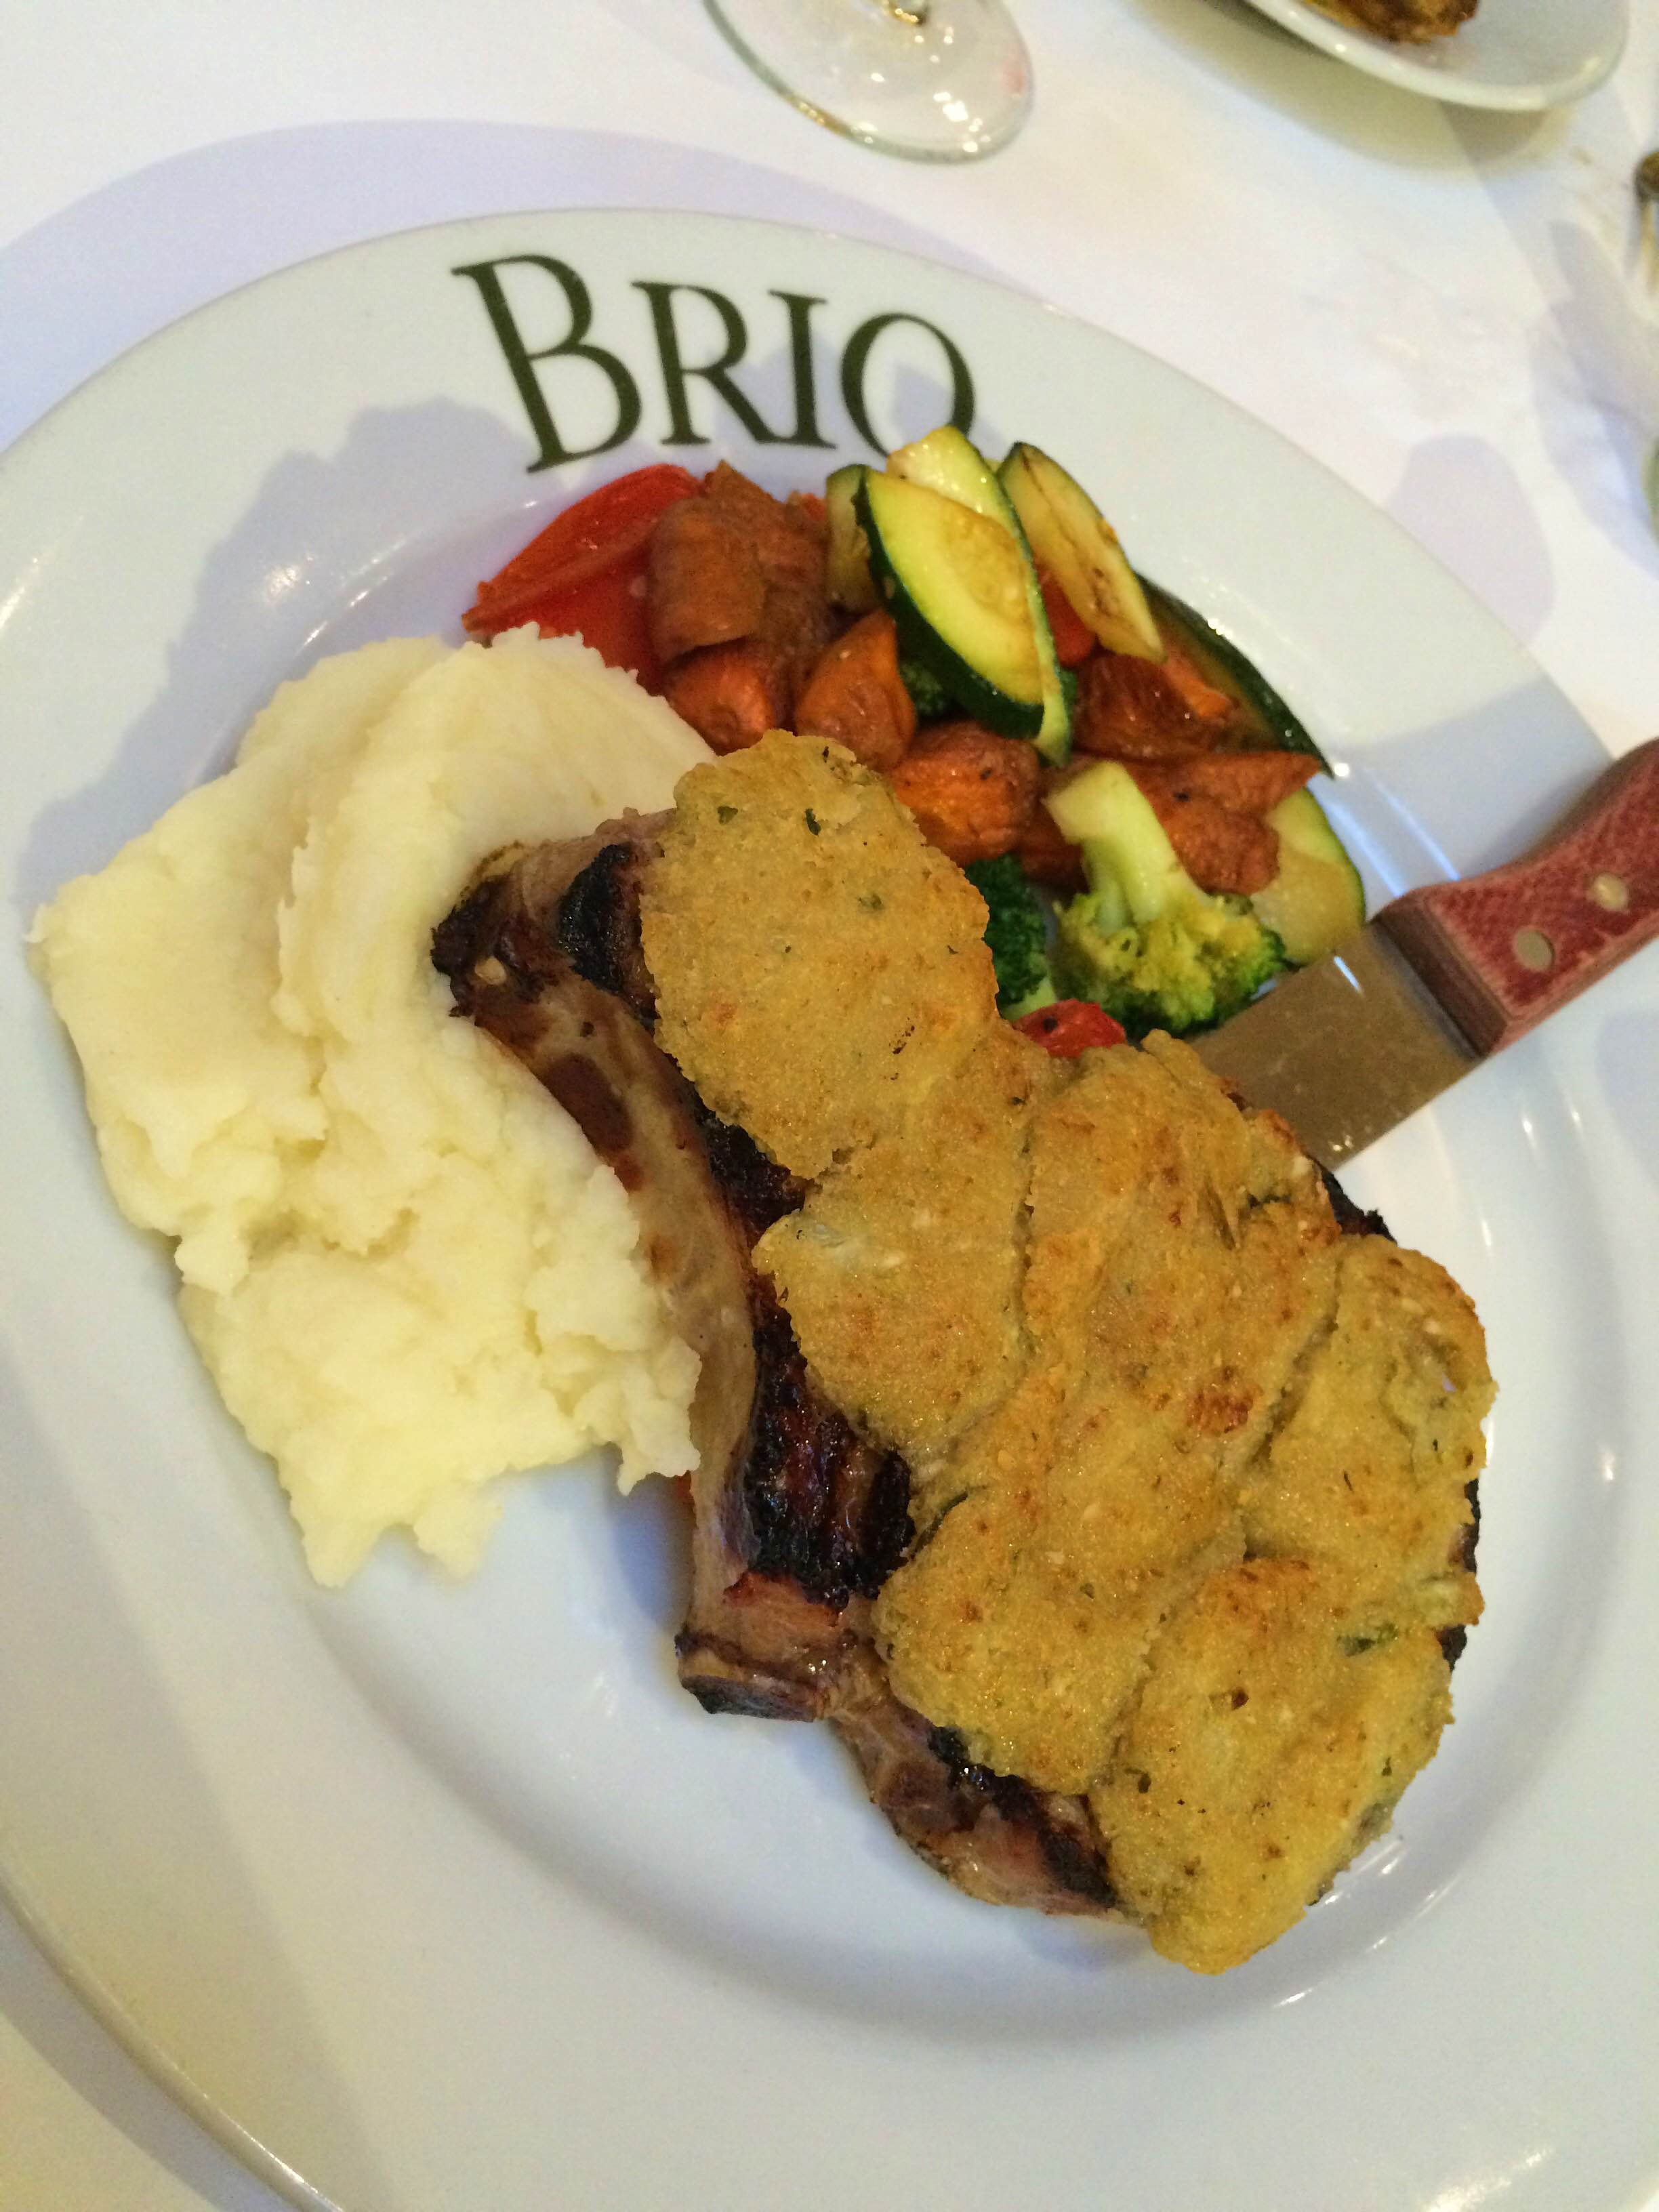 BRIO Tuscan Grille South Florida: The Art of Grilling – The South ...